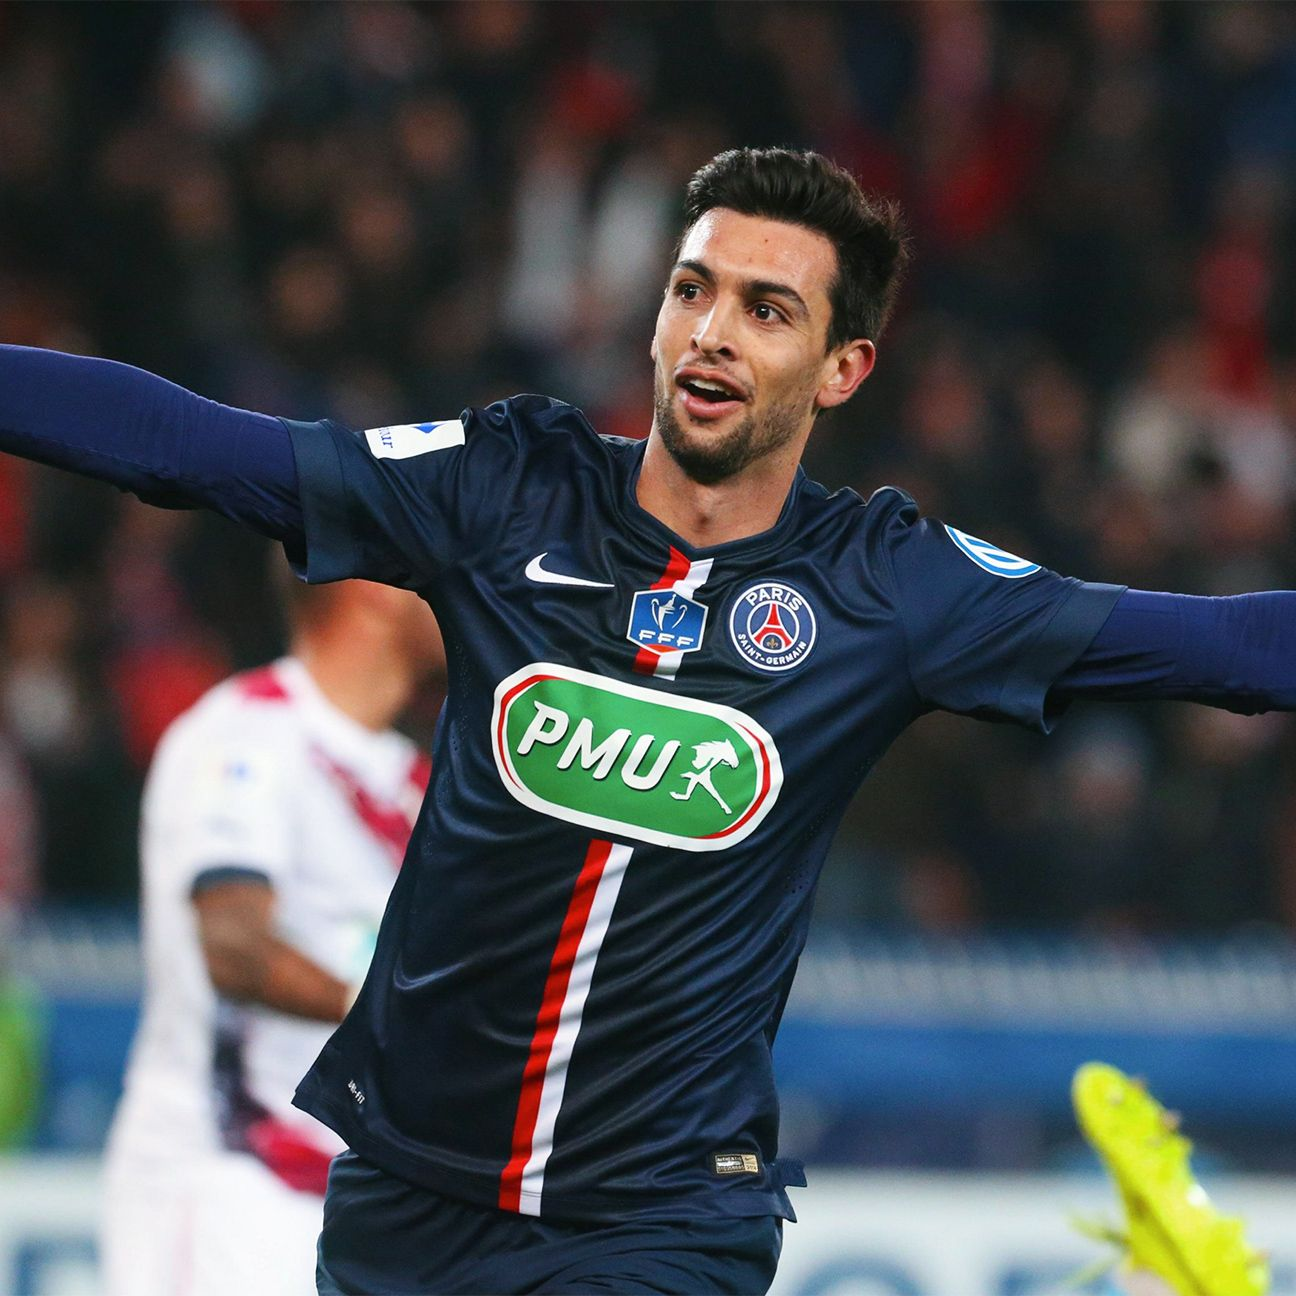 Javier Pastore started 31 Ligue 1 matches for PSG in 2014-15.